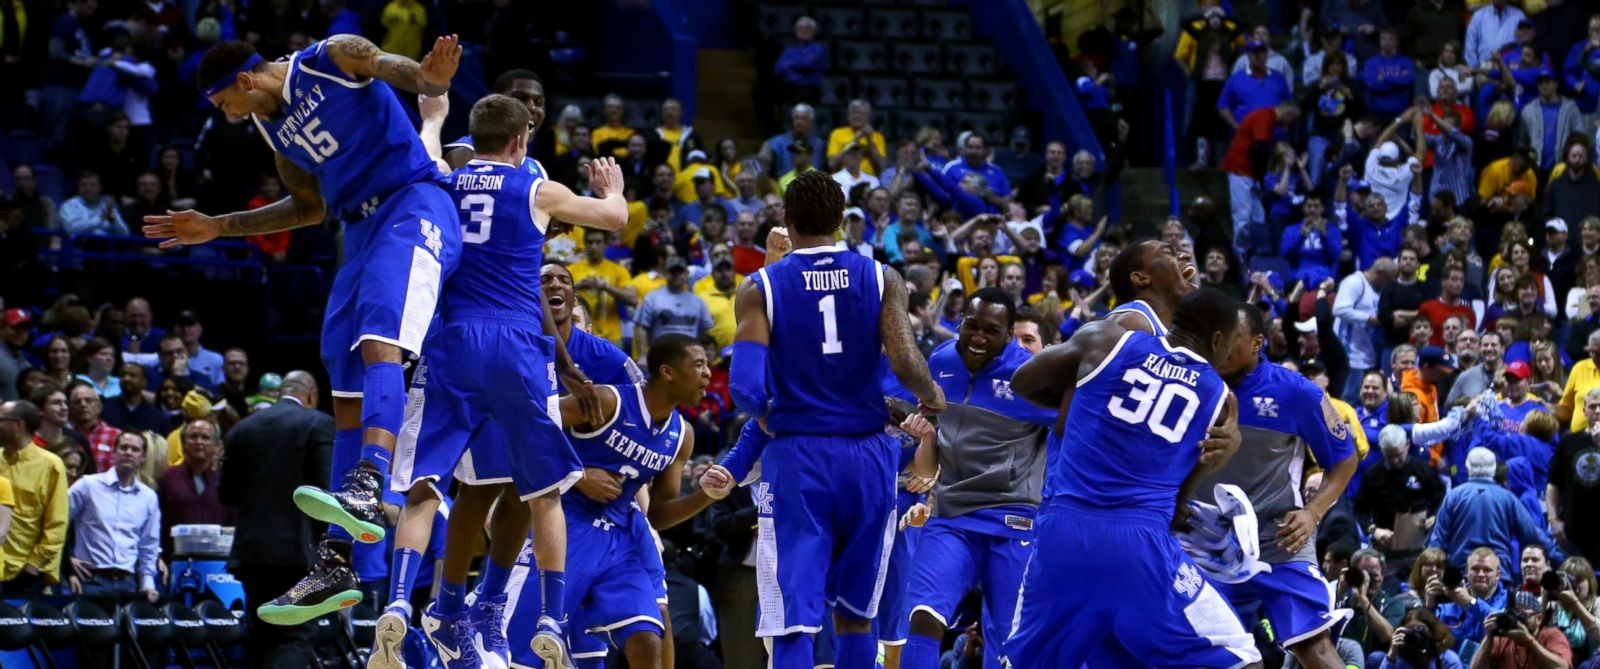 PHOTO: The Kentucky Wildcats celebrate defeating the Wichita State Shockers 78 to 76 during the third round of the 2014 NCAA Mens Basketball Tournament at Scottrade Center on March 23, 2014 in St Louis.